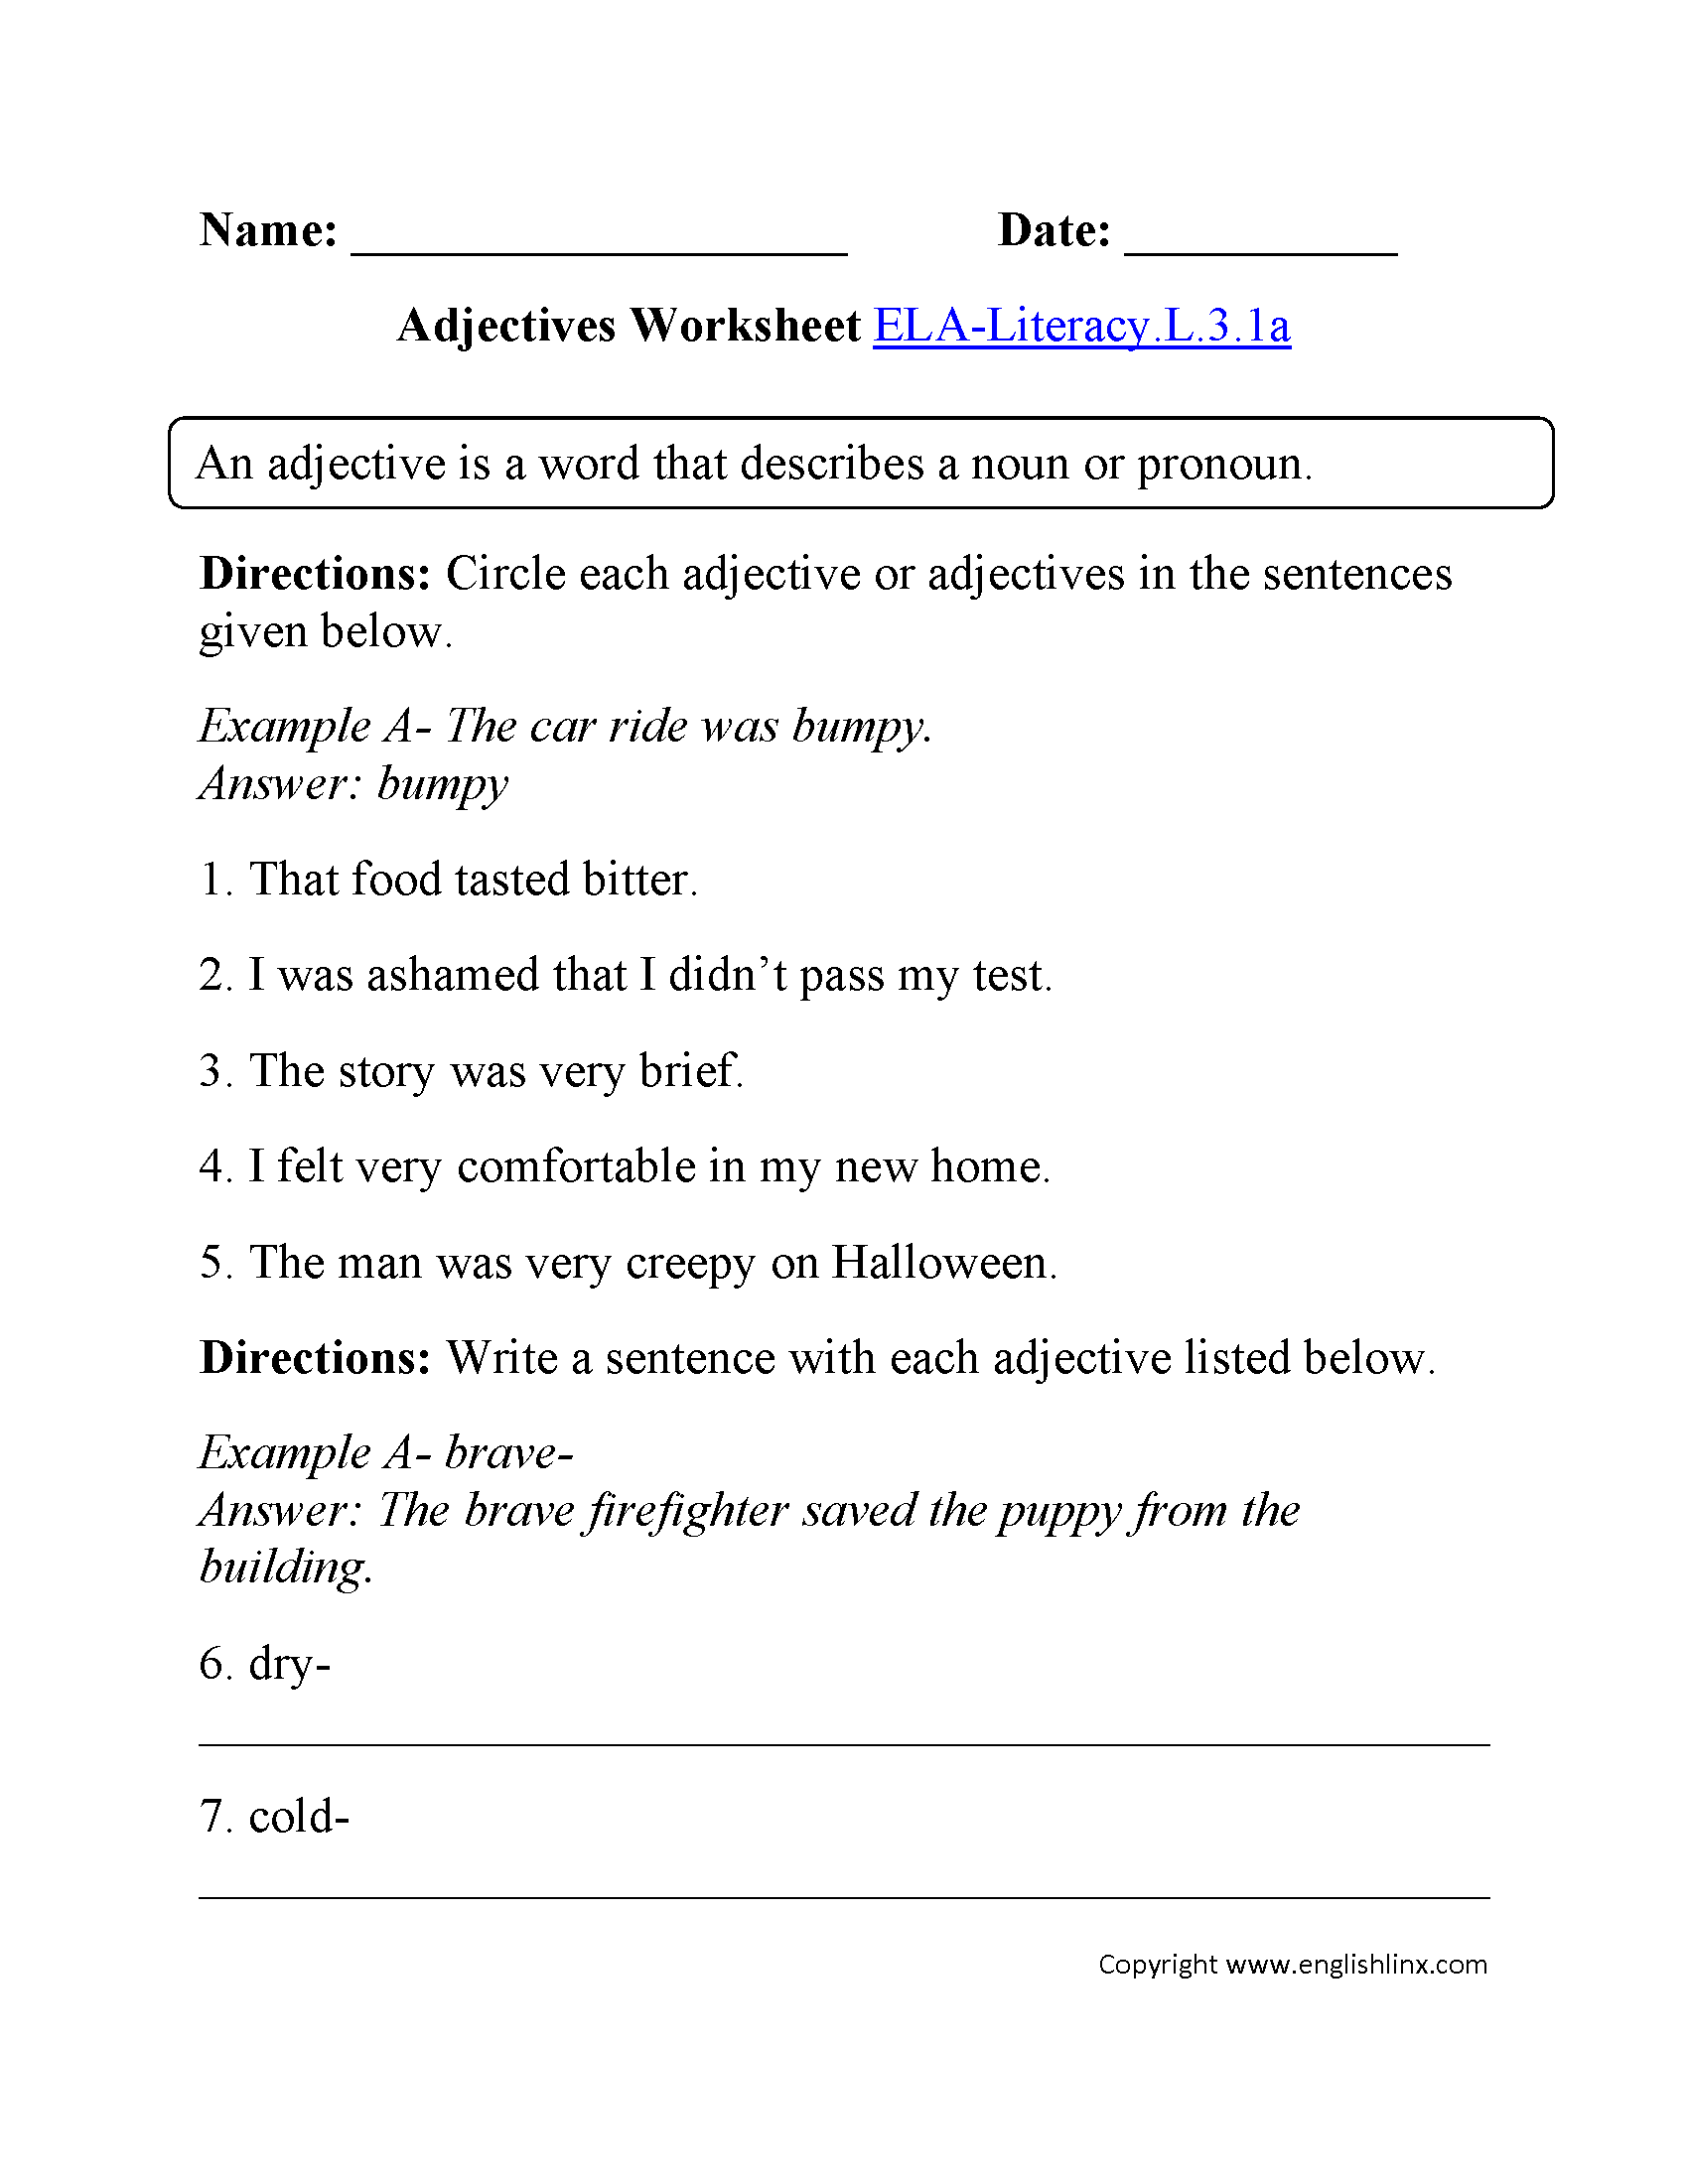 Worksheet English Language Worksheets For Grade 2 3rd grade common core language worksheets adjectives worksheet 2 ela literacy l 3 1a worksheet